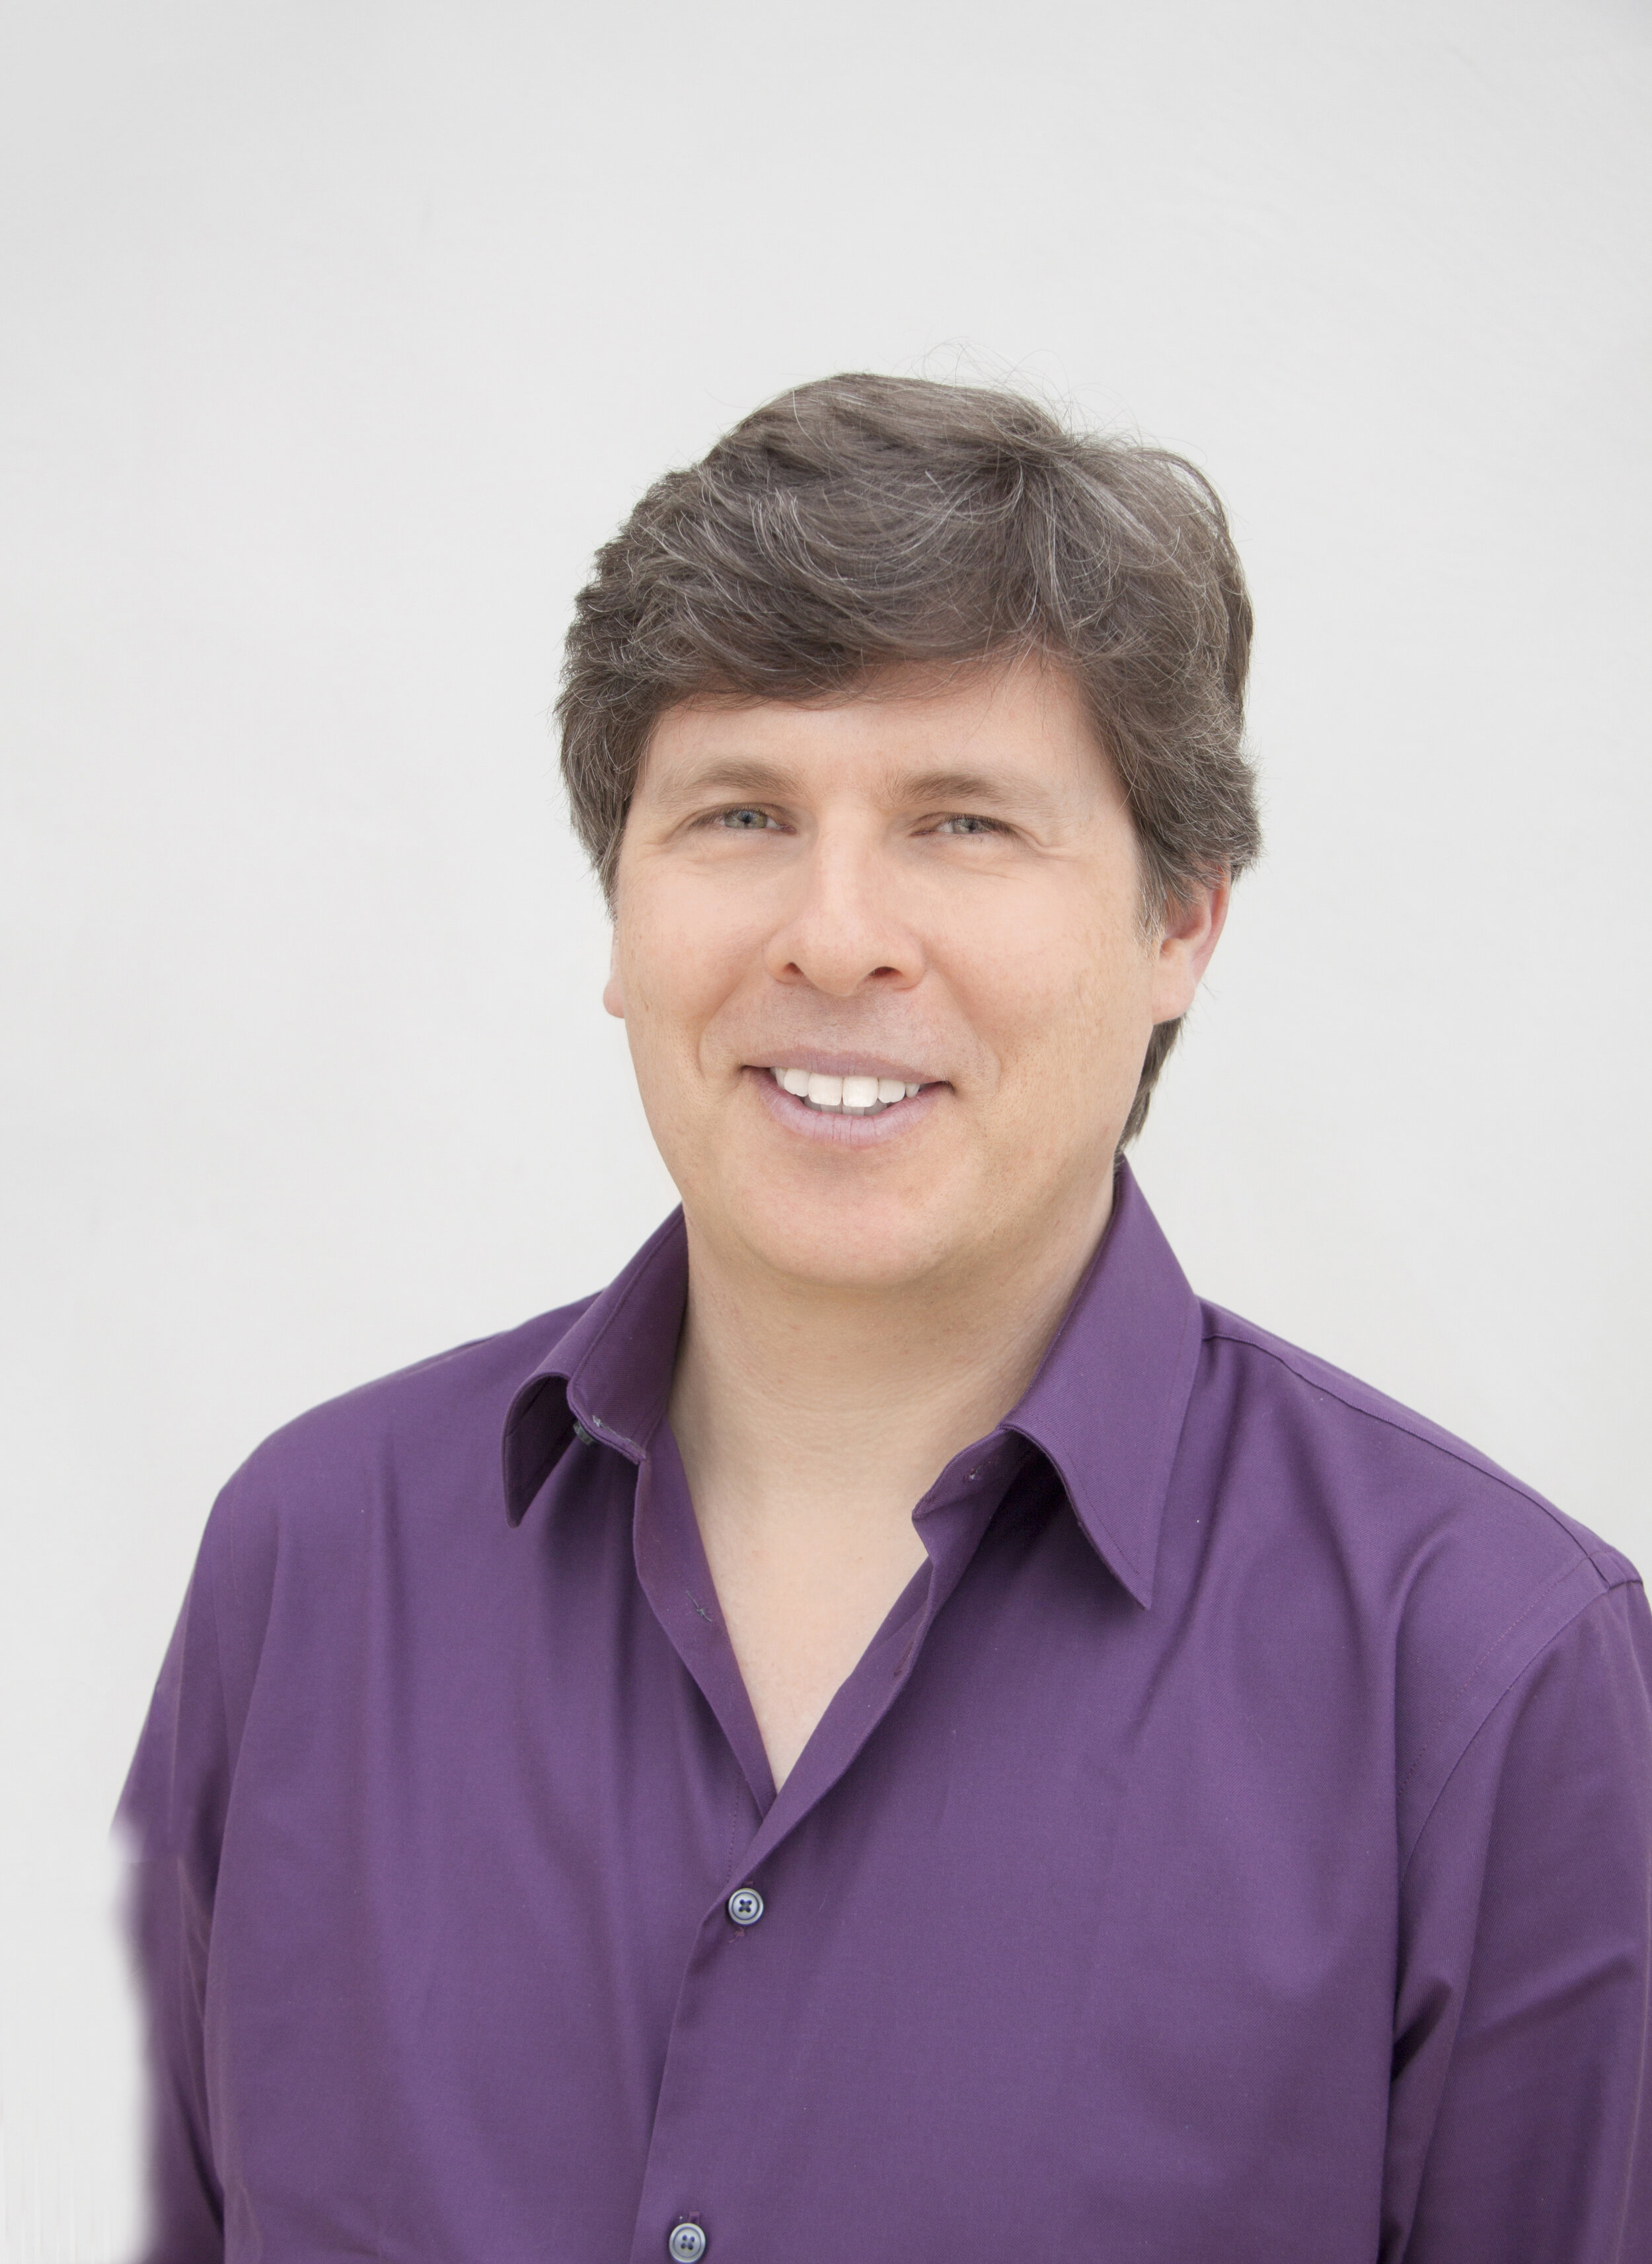 Oren Etzioni  - Chief Executive Officer of the Allen Institute for Artificial Intelligence